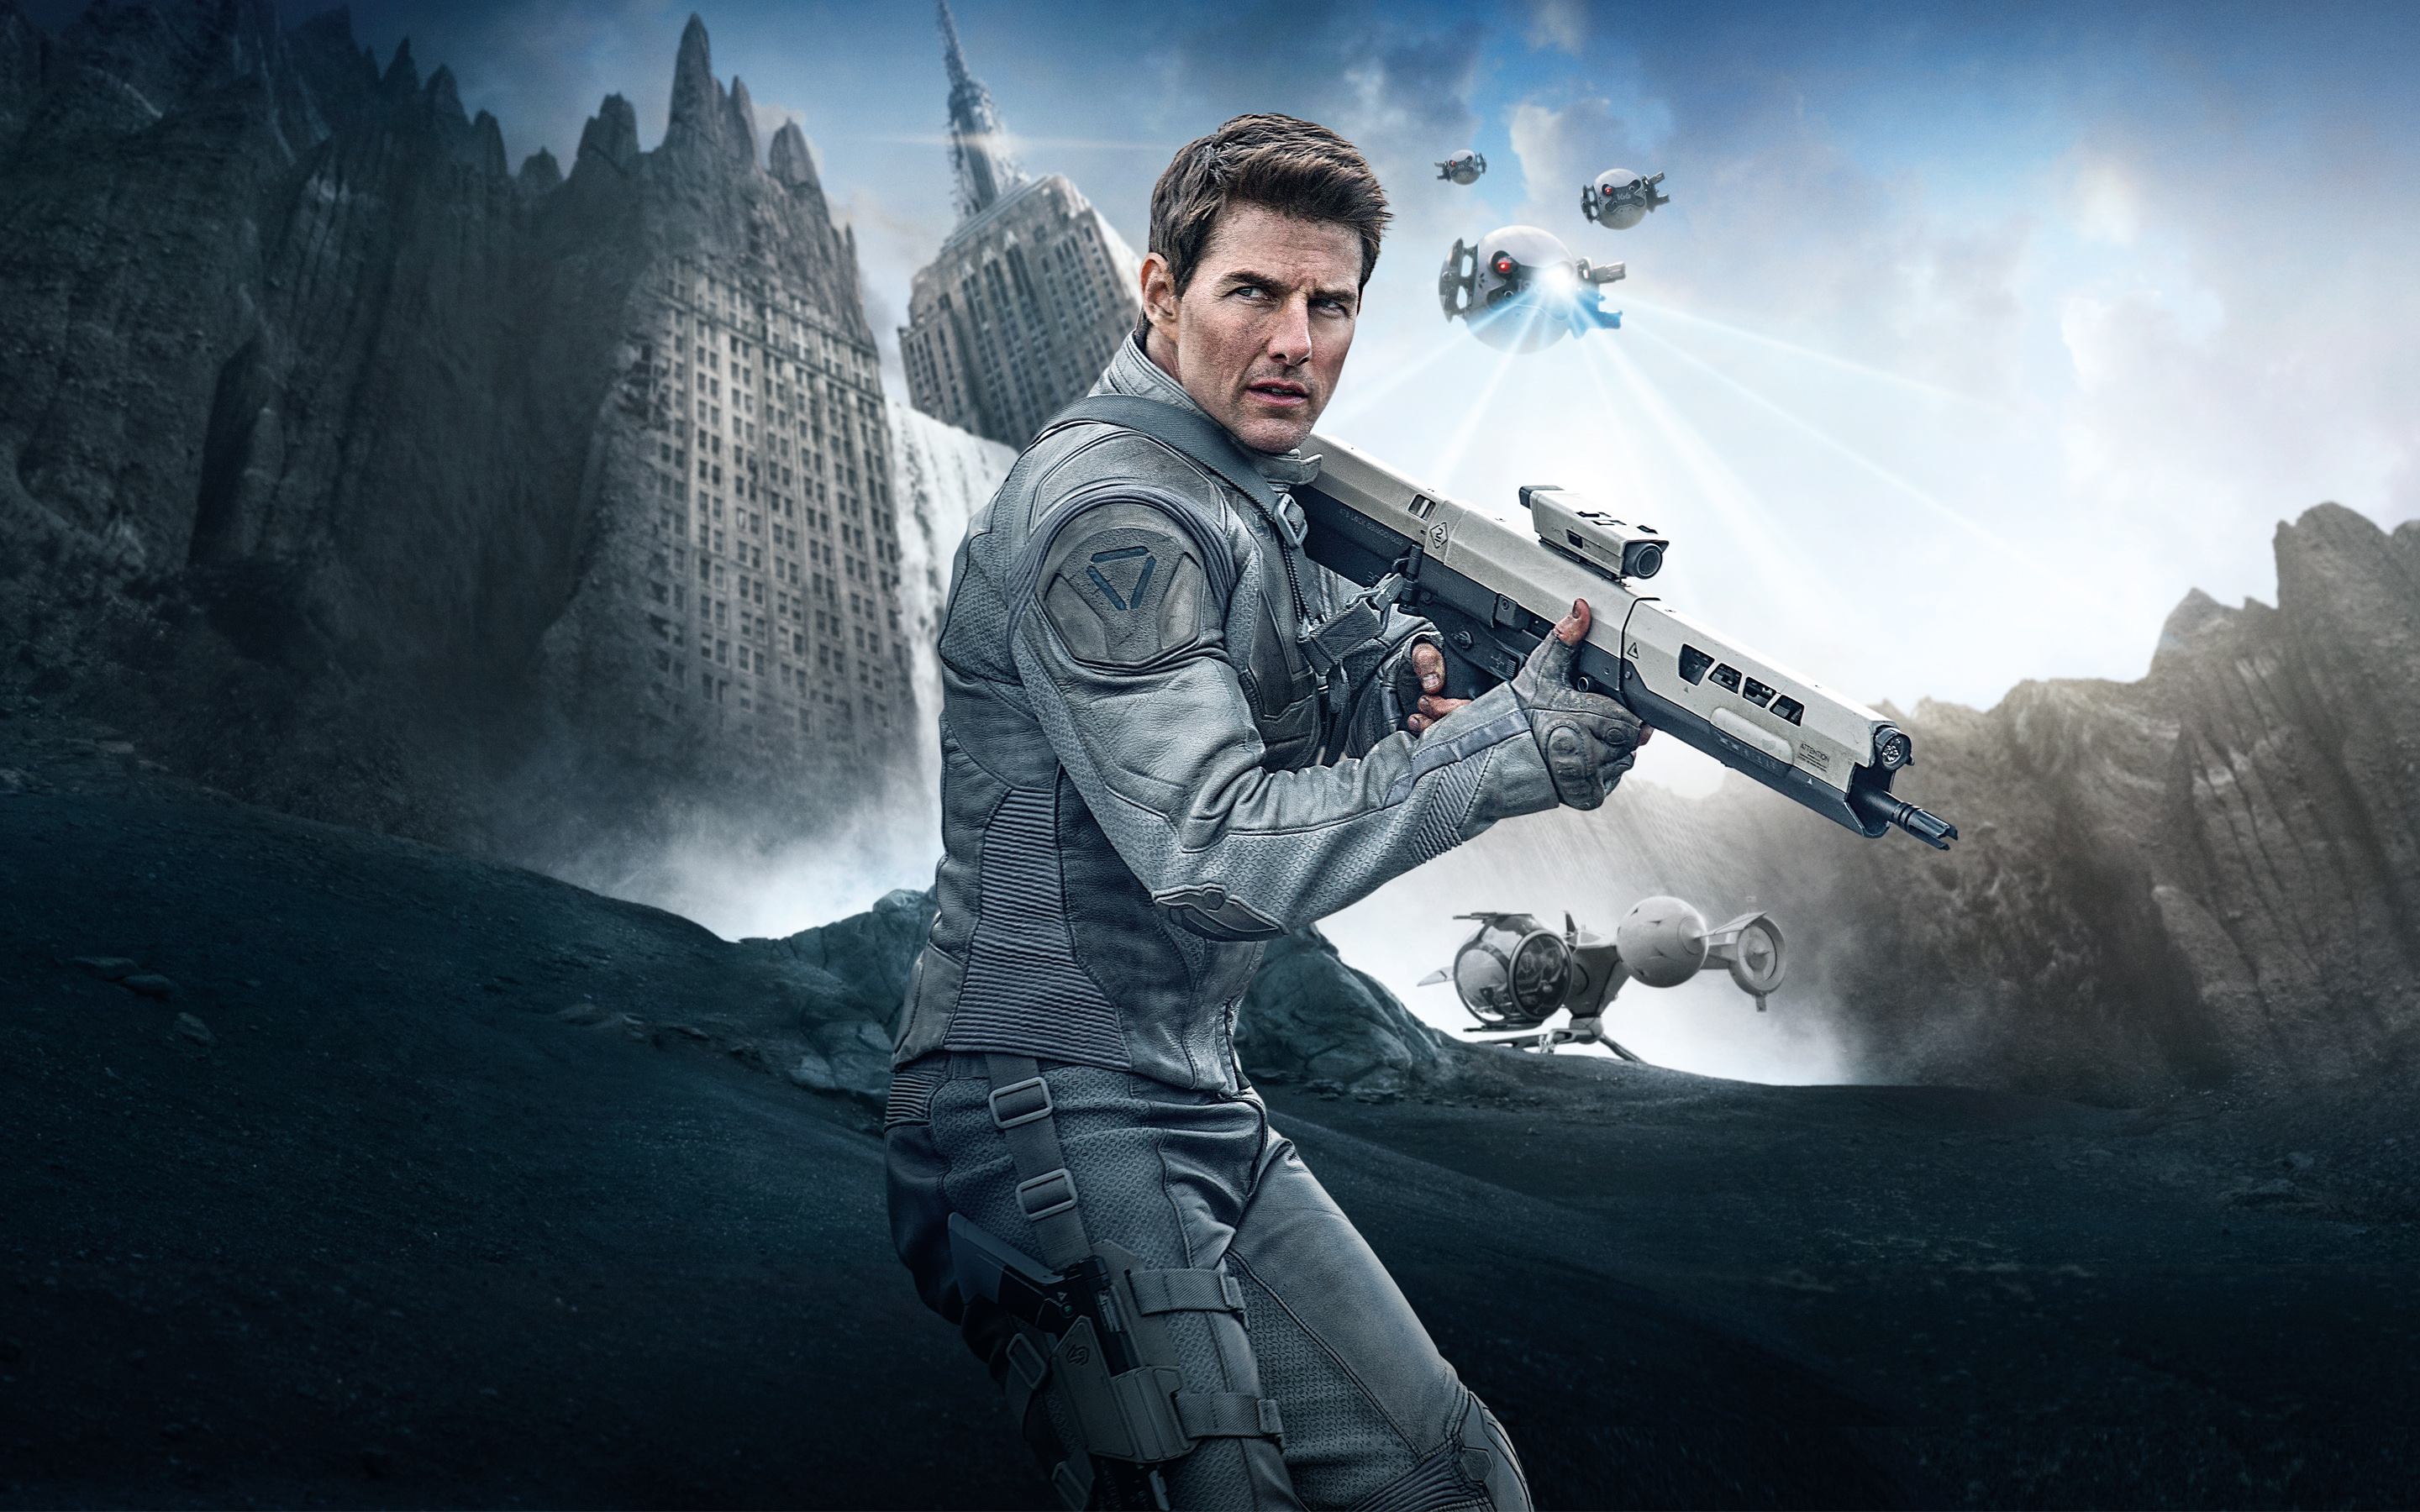 Tom Cruise in Oblivion 4150900 2880x1800 All For Desktop 2880x1800